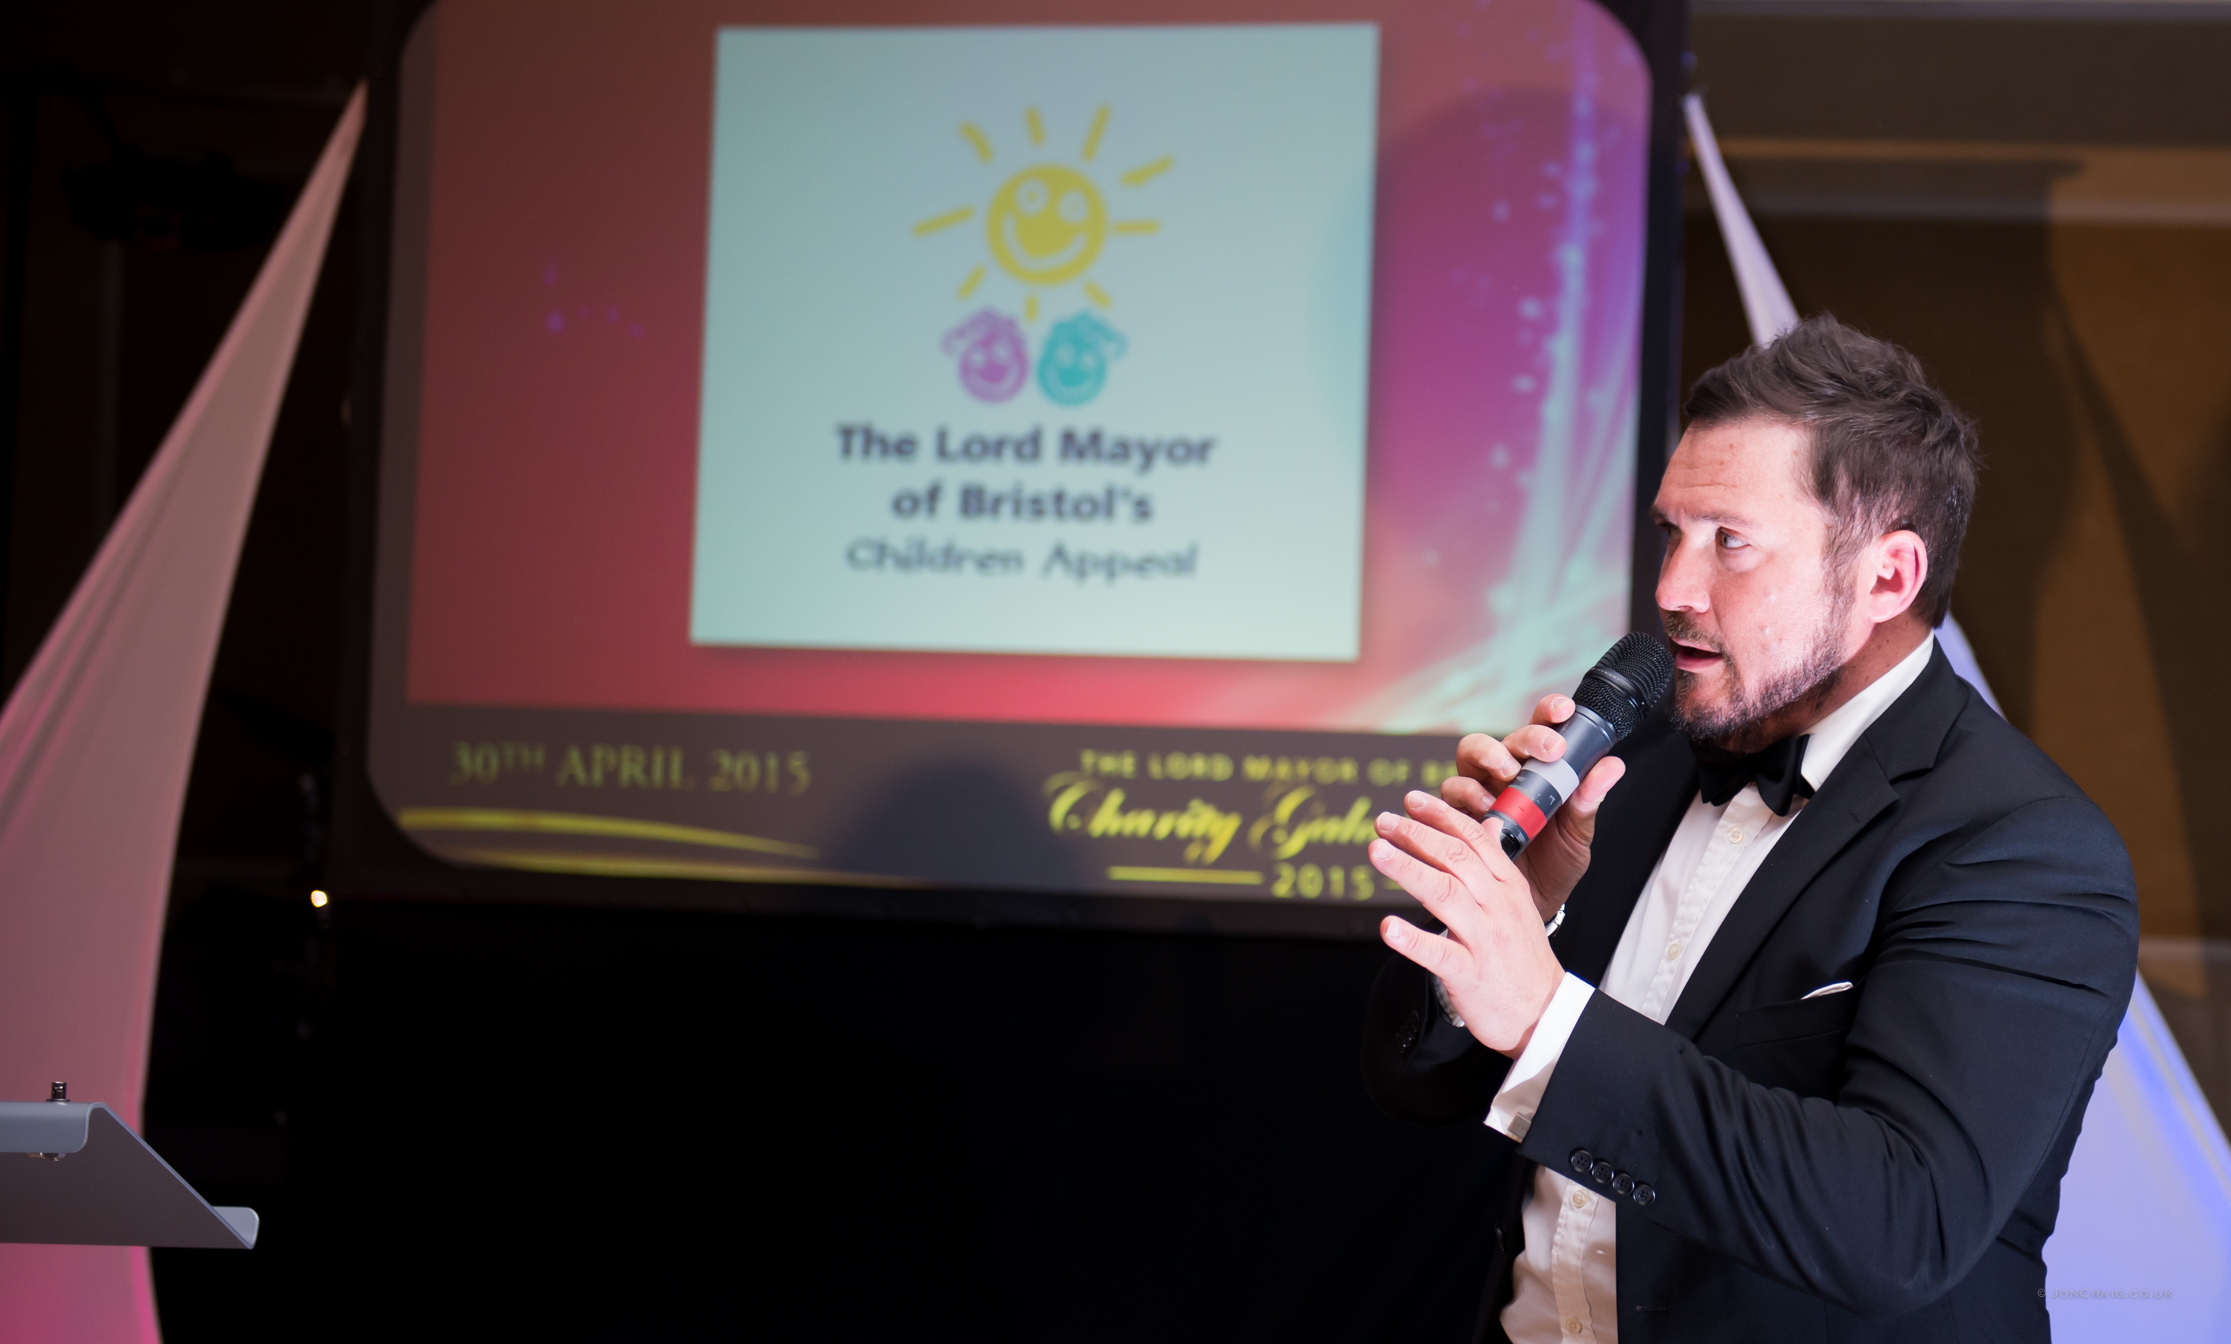 Auctioneer and compere for The Lord Mayor's Children Appeal at The Royal Marriott in April 2015